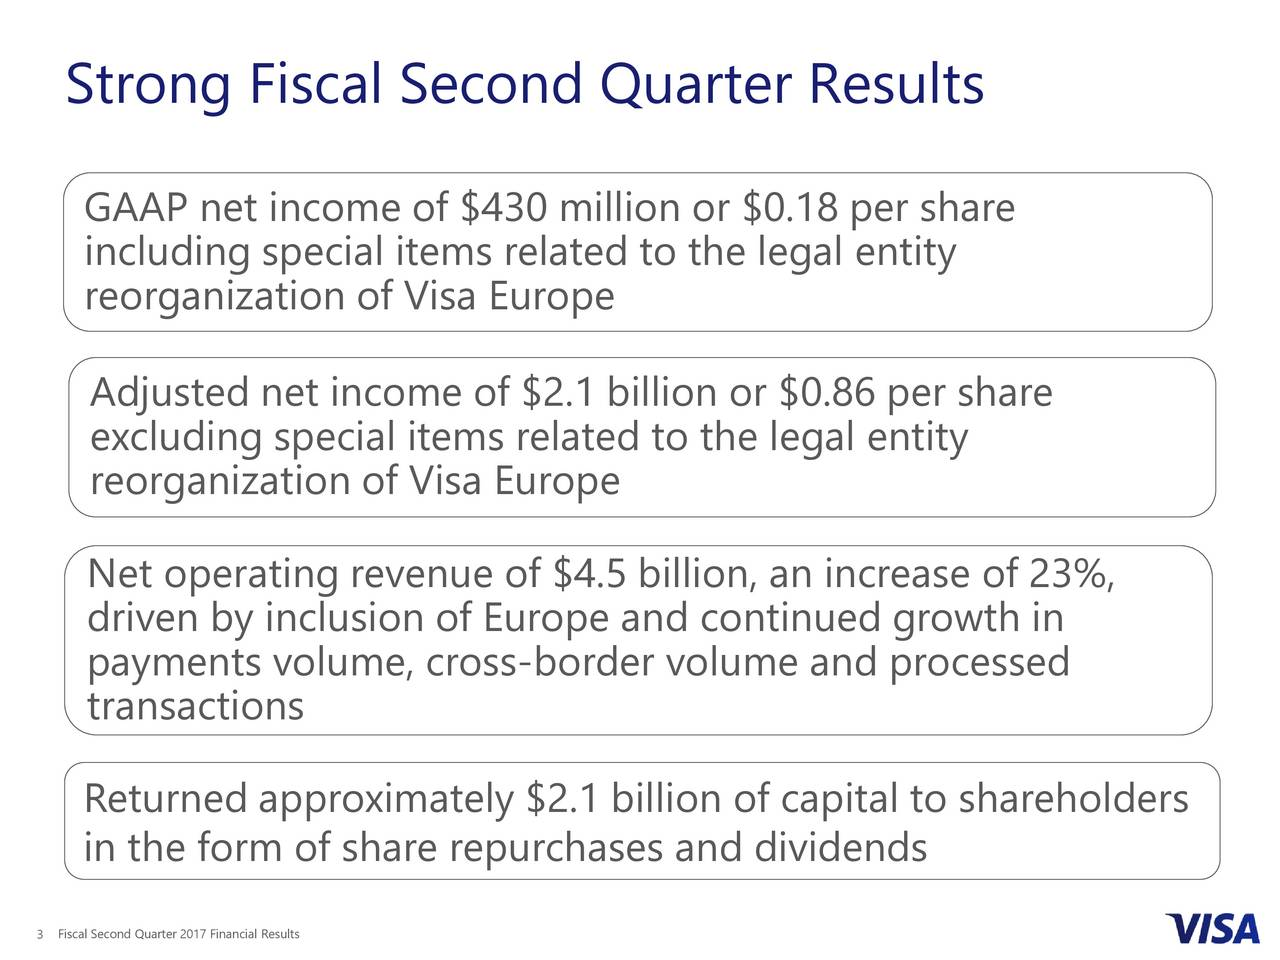 GAAP net income of $430 million or $0.18 per share including special items related to the legal entity reorganization of Visa Europe Adjusted net income of $2.1 billion or $0.86 per share excluding special items related to the legal entity reorganization of Visa Europe Net operating revenue of $4.5 billion, an increase of 23%, driven by inclusion of Europe and continued growth in payments volume, cross-border volume and processed transactions Returned approximately $2.1 billion of capital to shareholders in the form of share repurchases and dividends 3Fiscal Second Quarter 2017 Financial Results